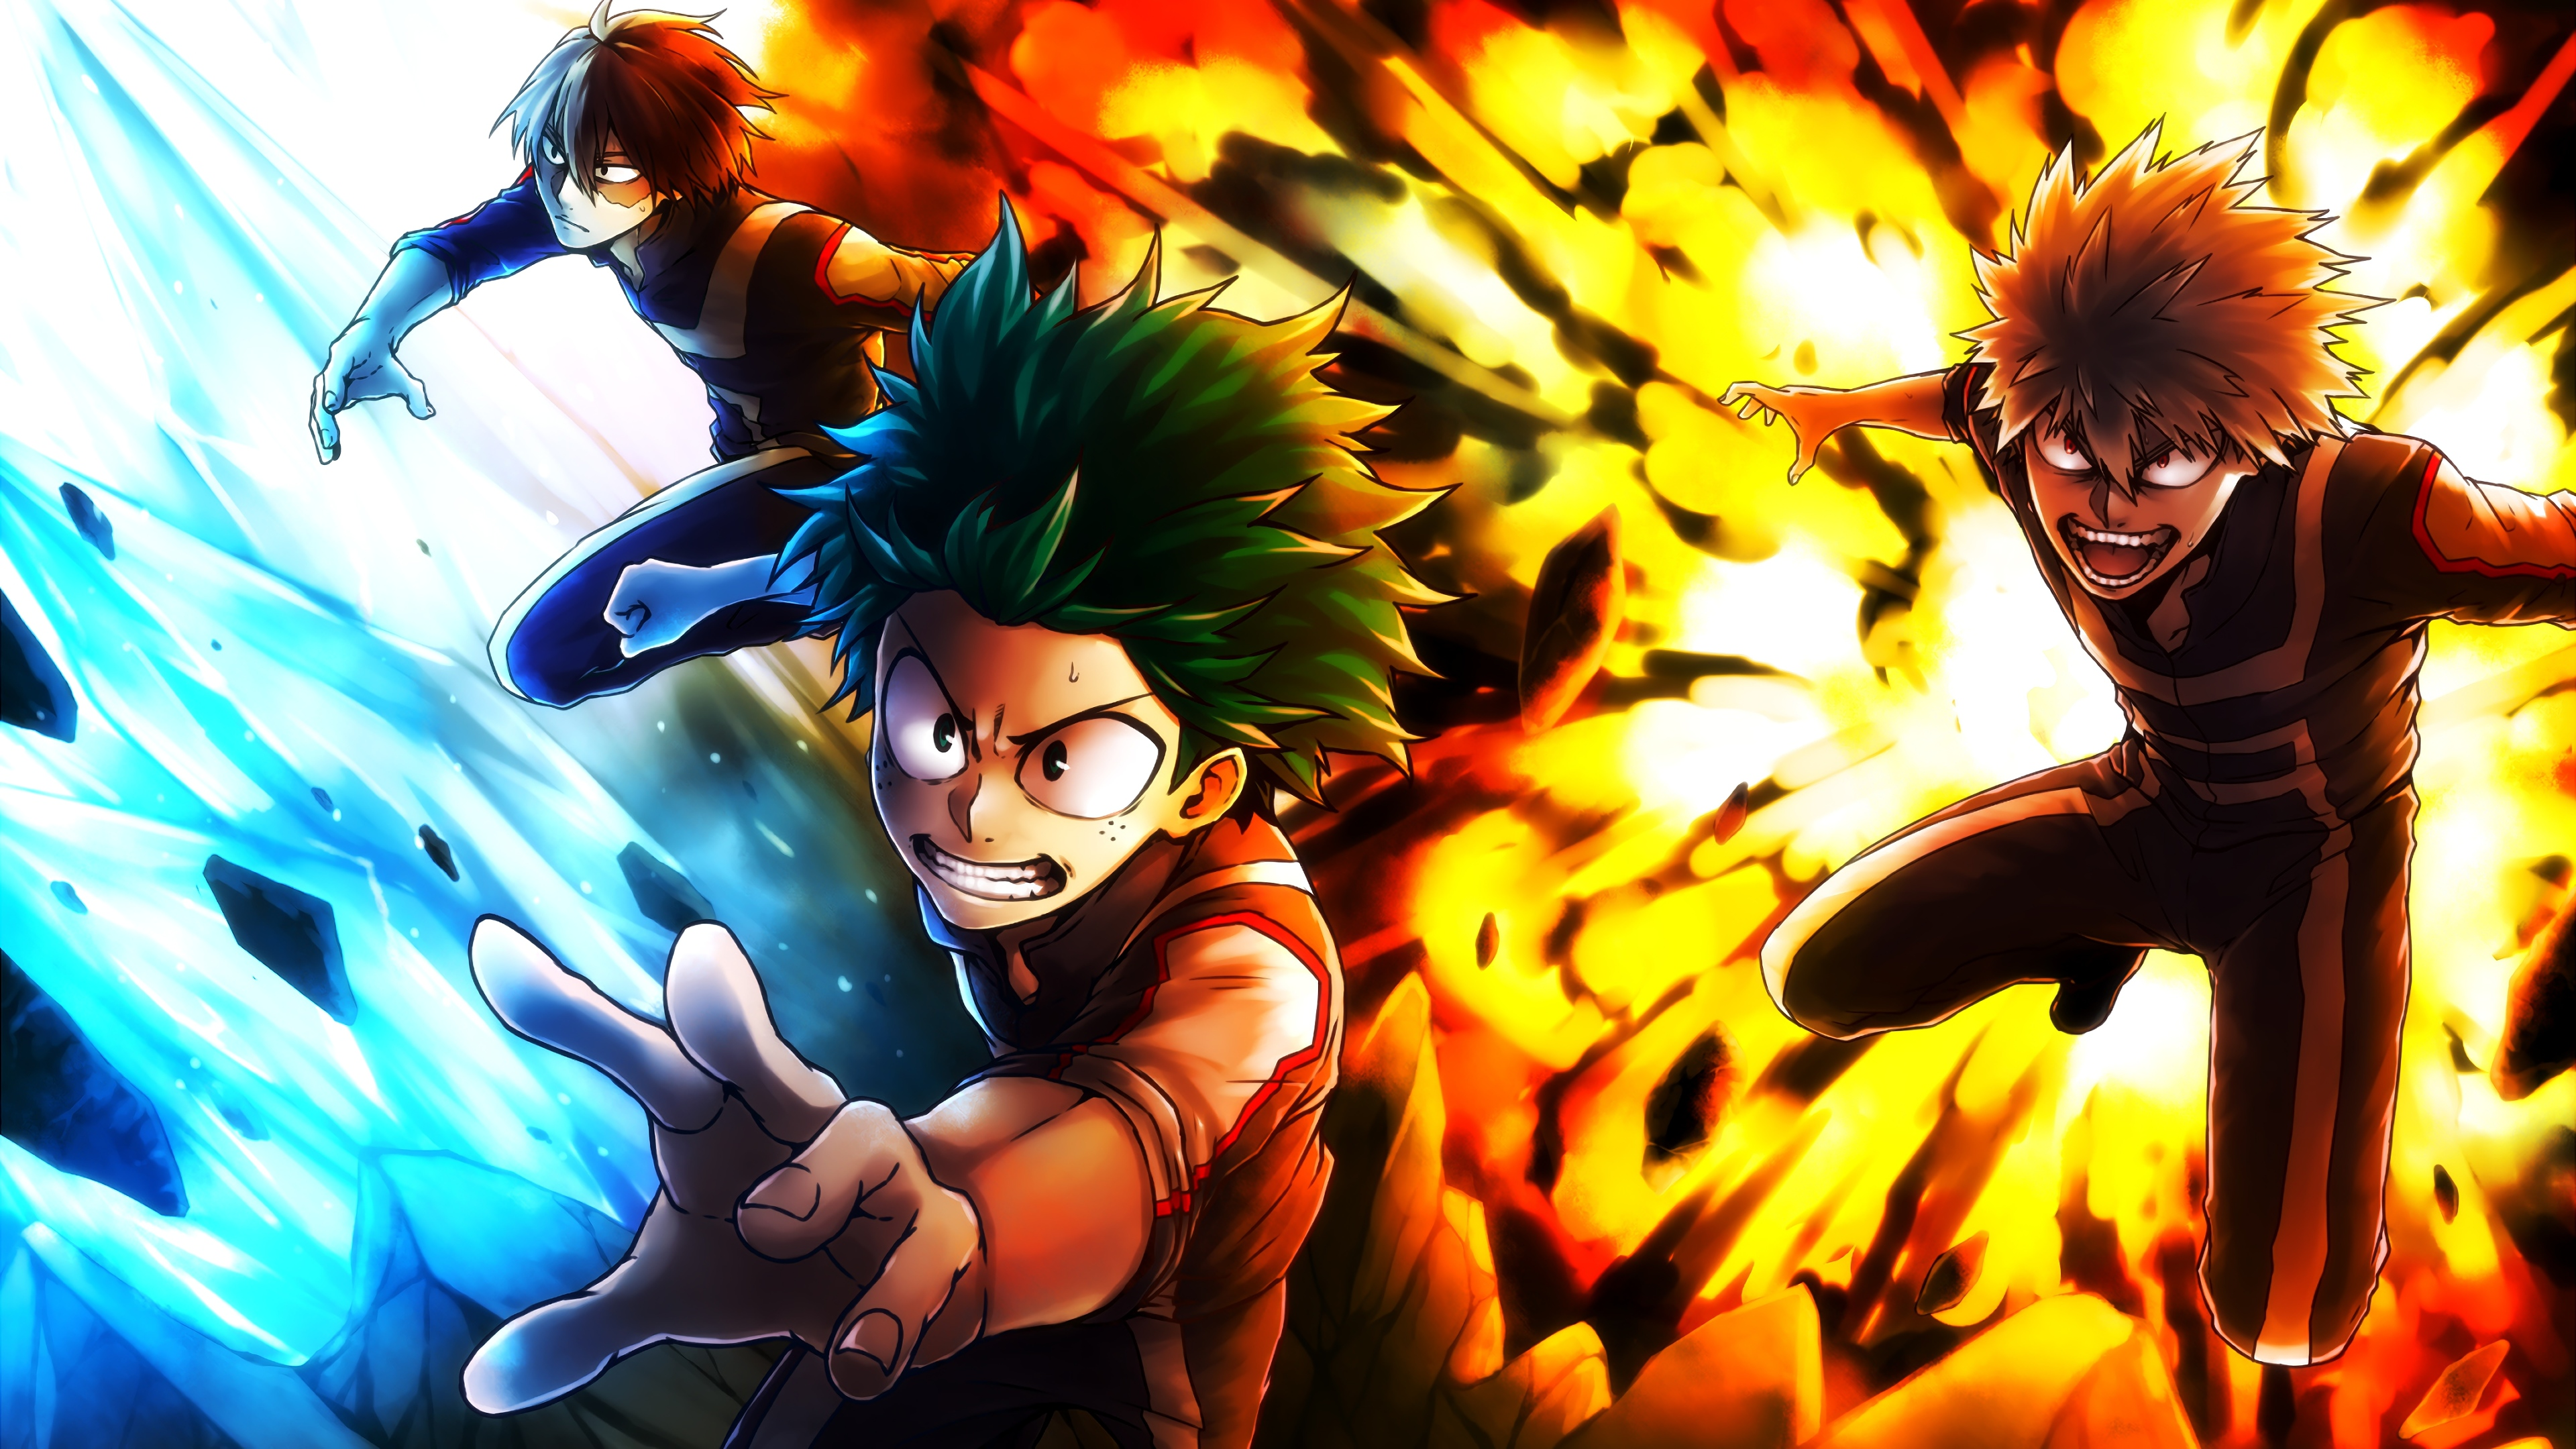 My Hero Academia Anime Wallpaper 4k Ultra Hd Id 3383